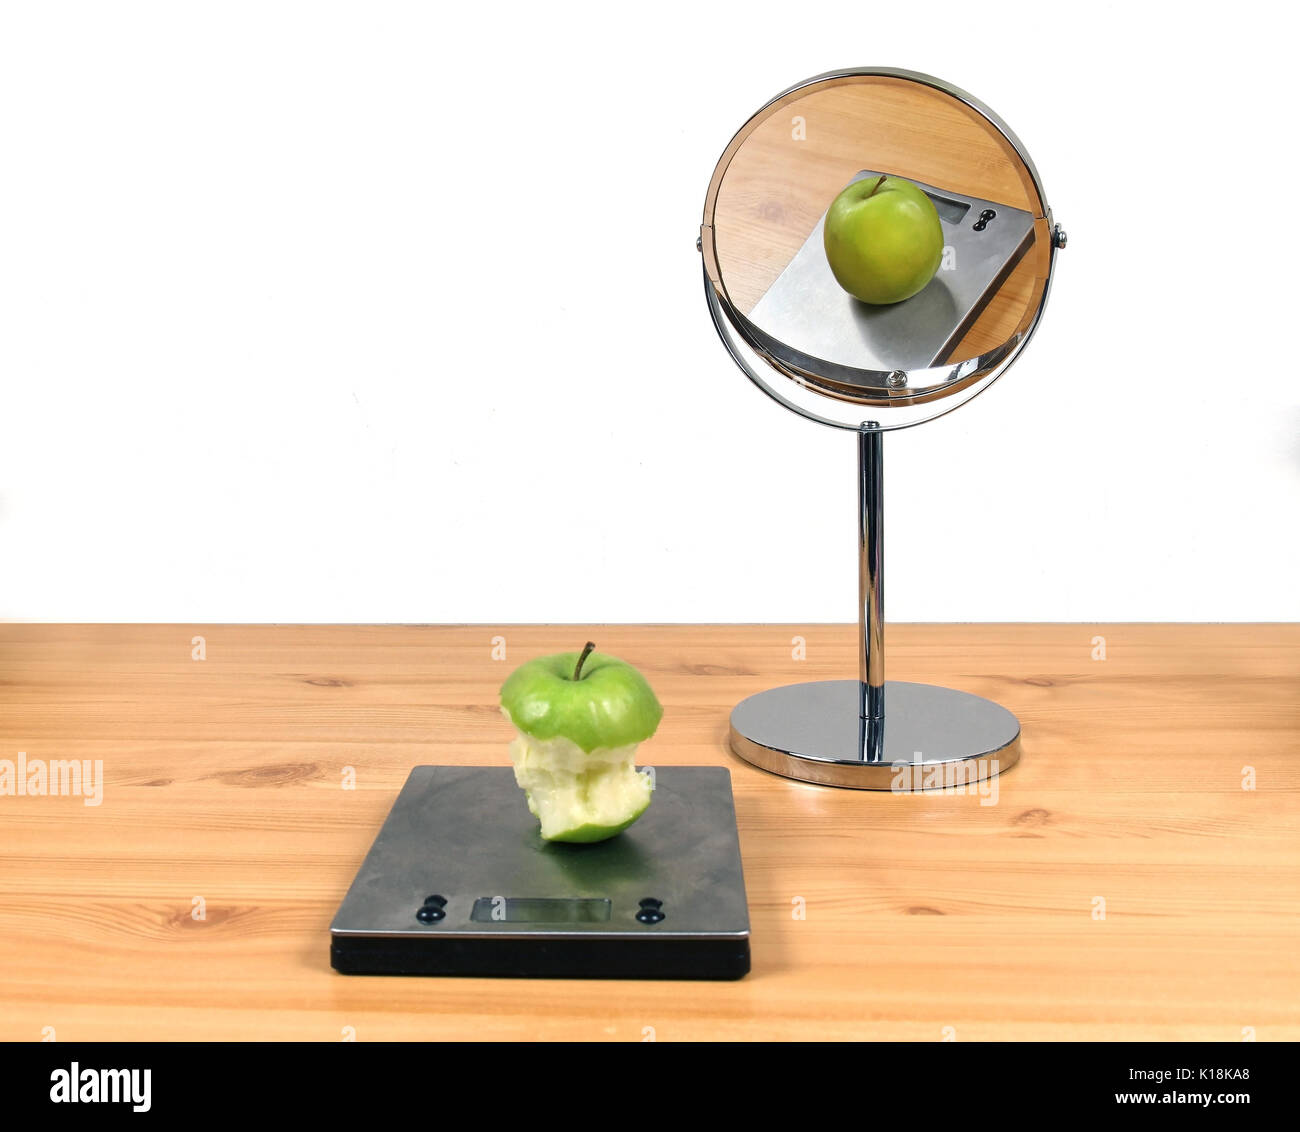 Concept about body image distortion with eaten apple and fat apple in the mirror - Stock Image